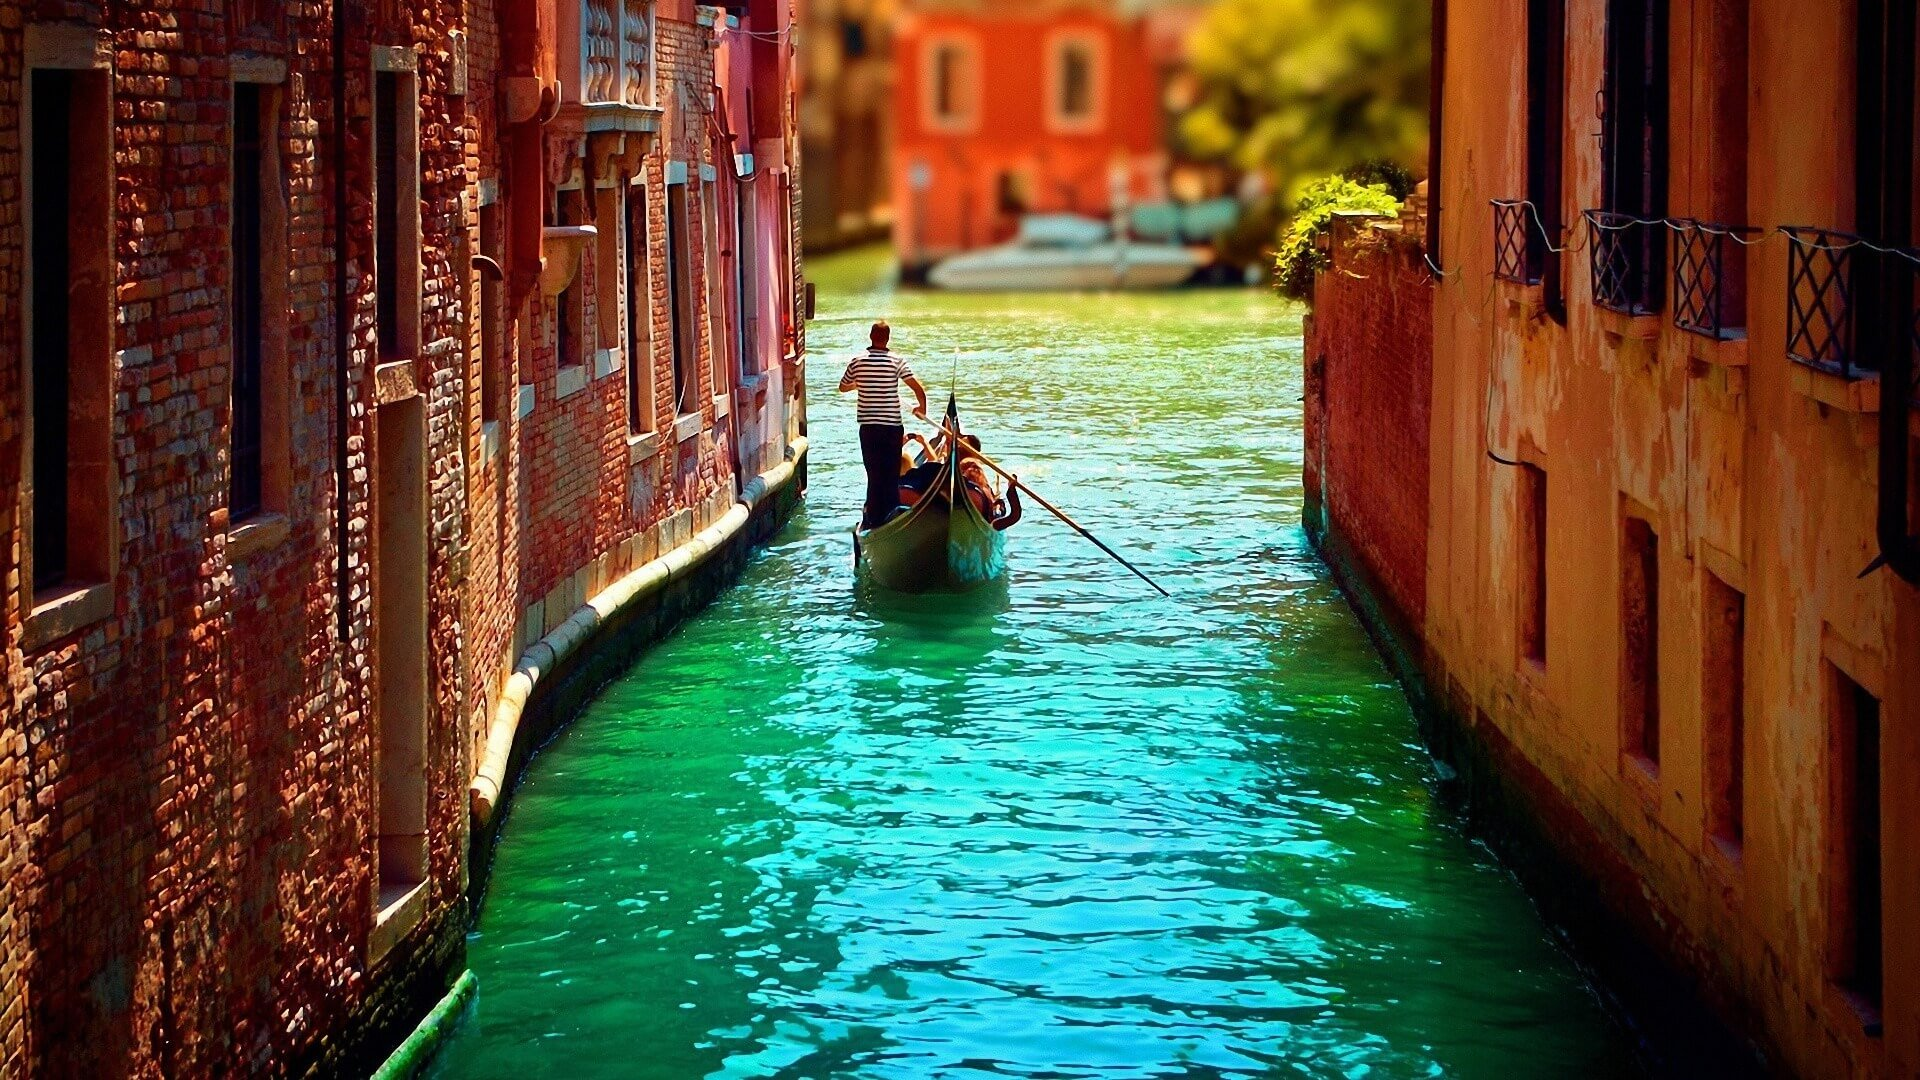 Cheap flights from Venice